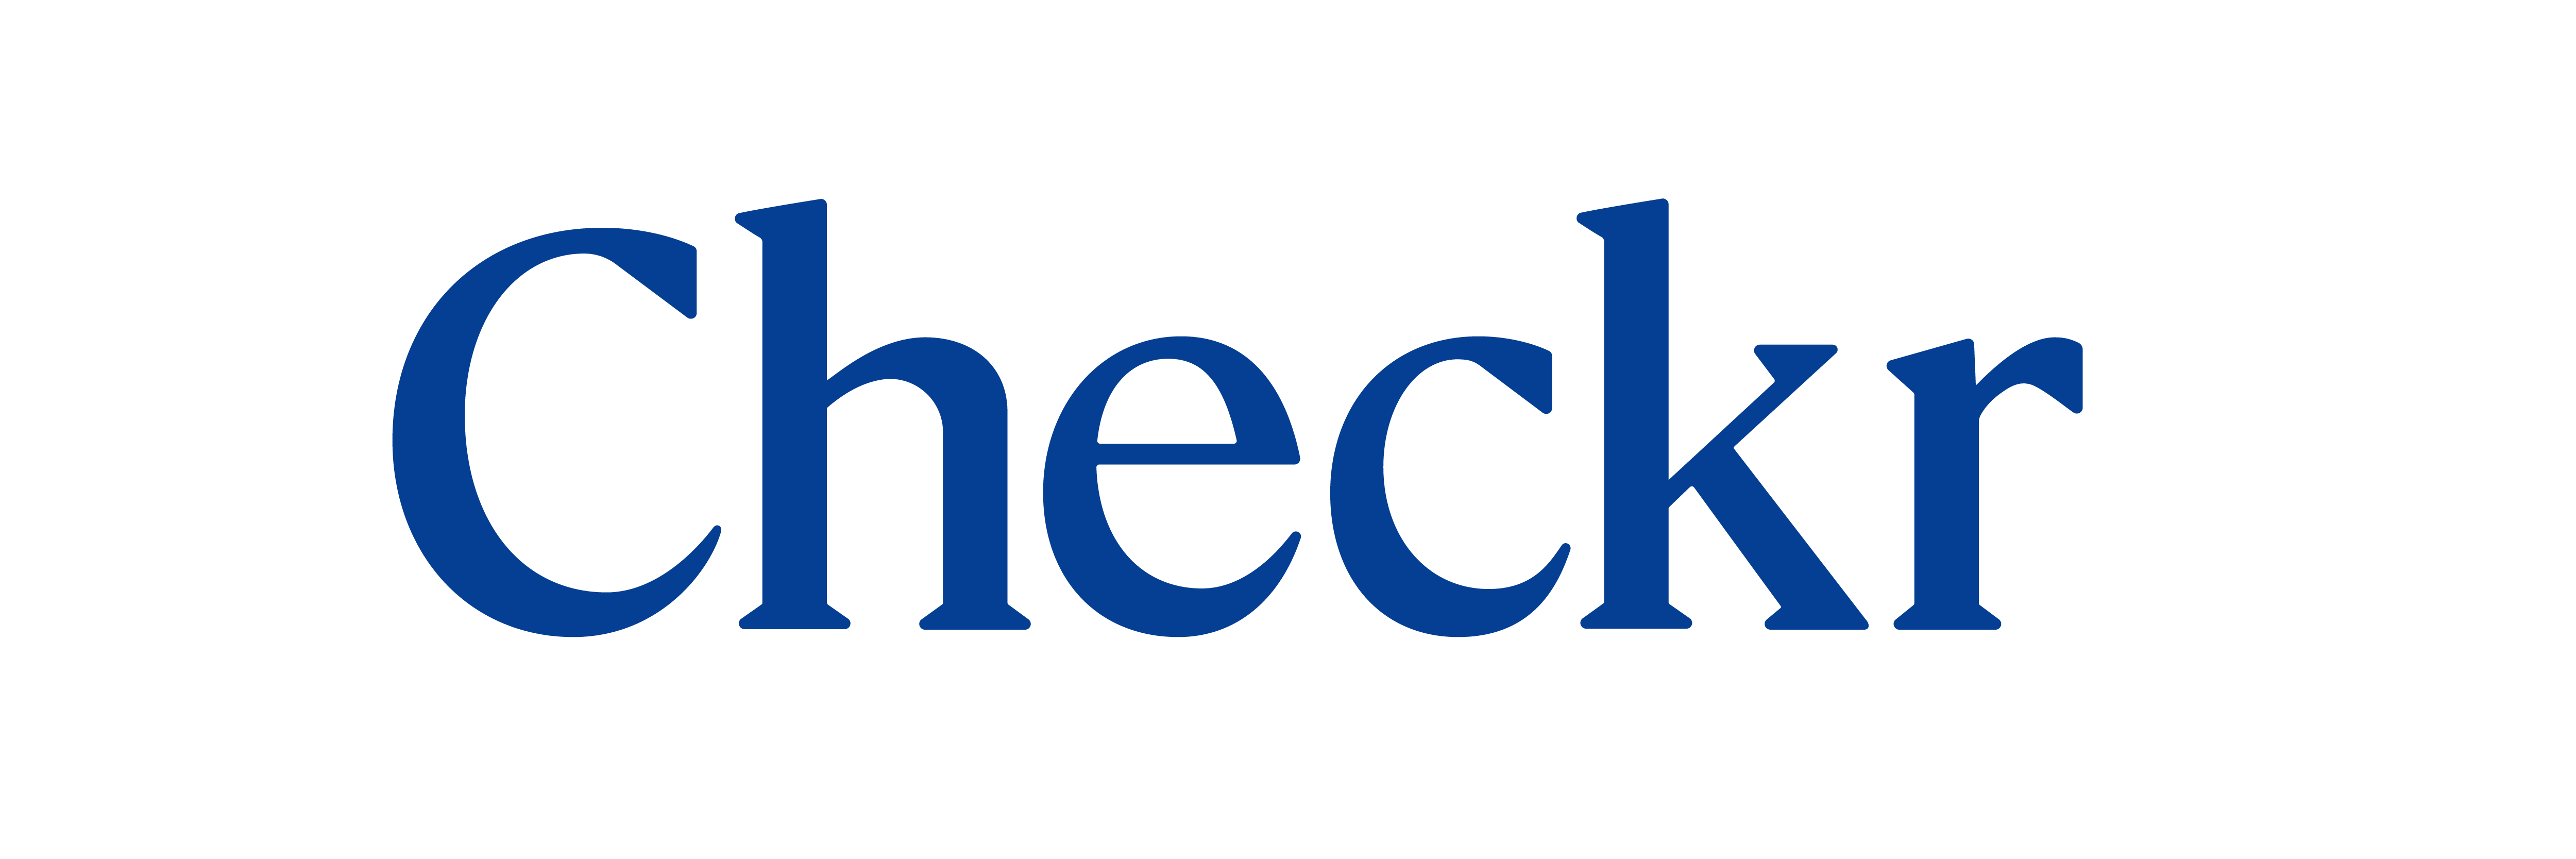 Checkr Help Center Help Center home page